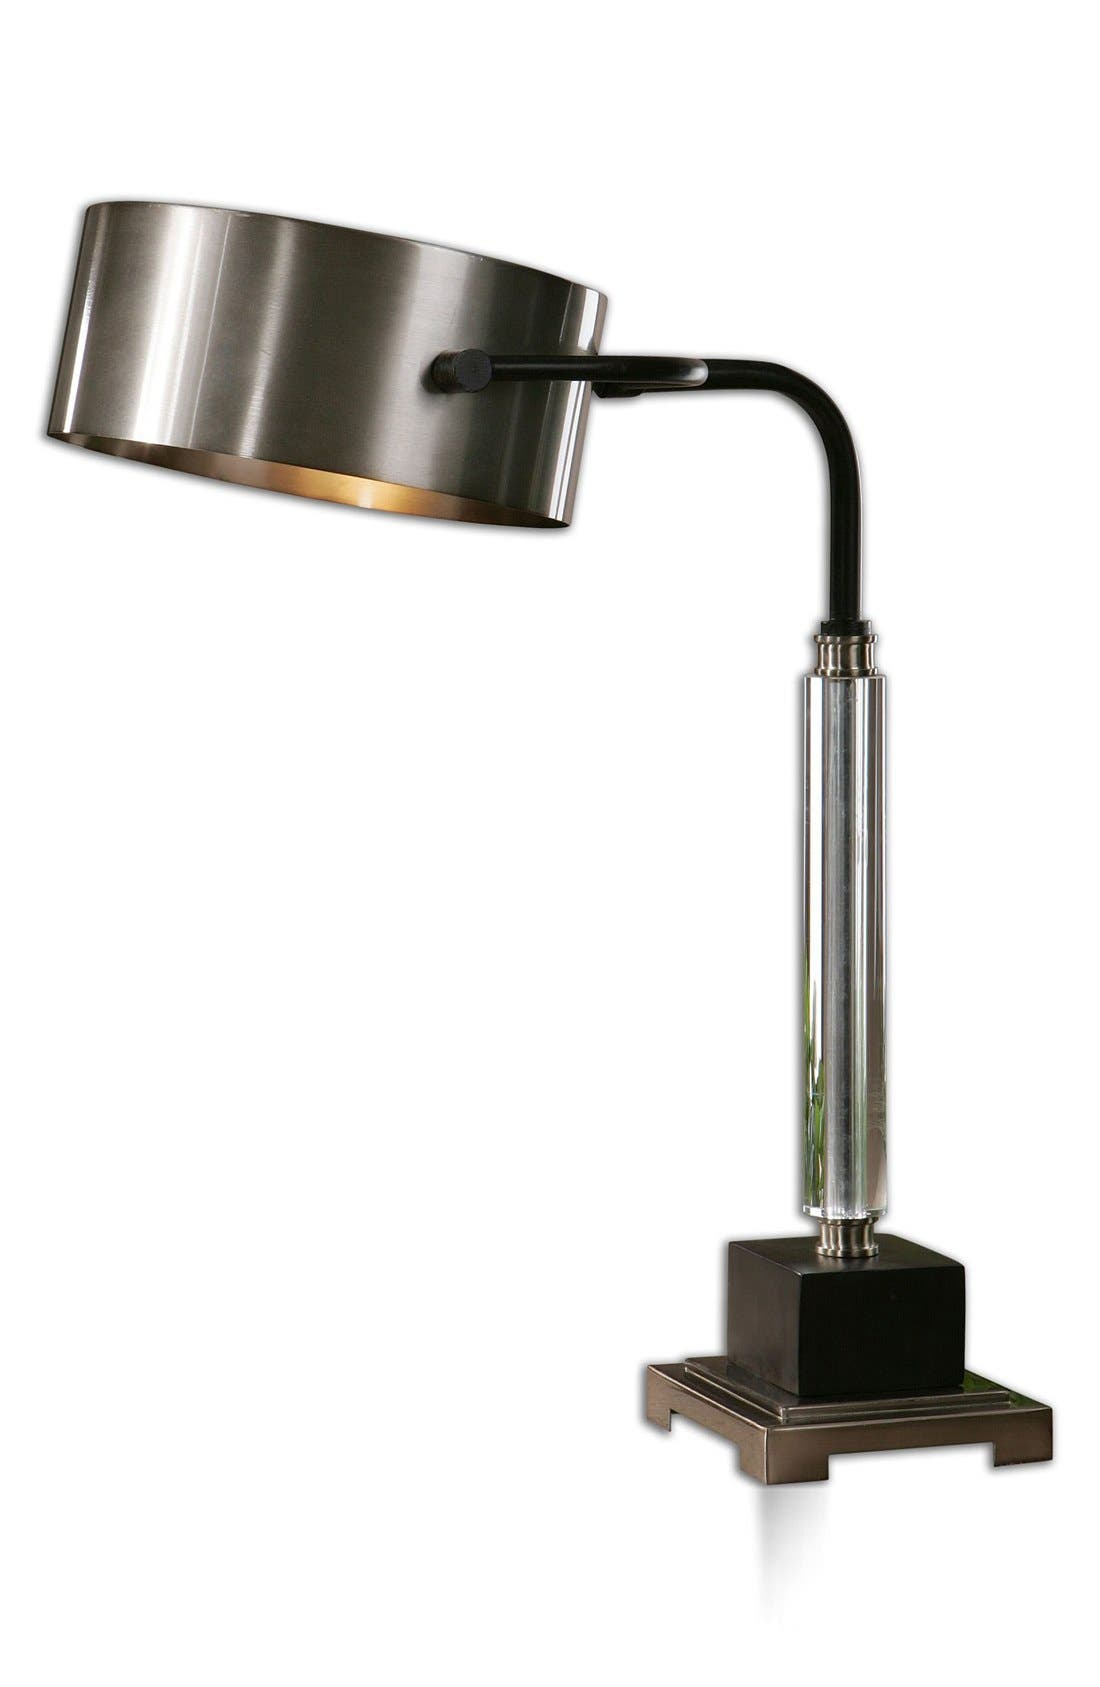 Alternate Image 1 Selected - Uttermost 'Belding' Desk Lamp